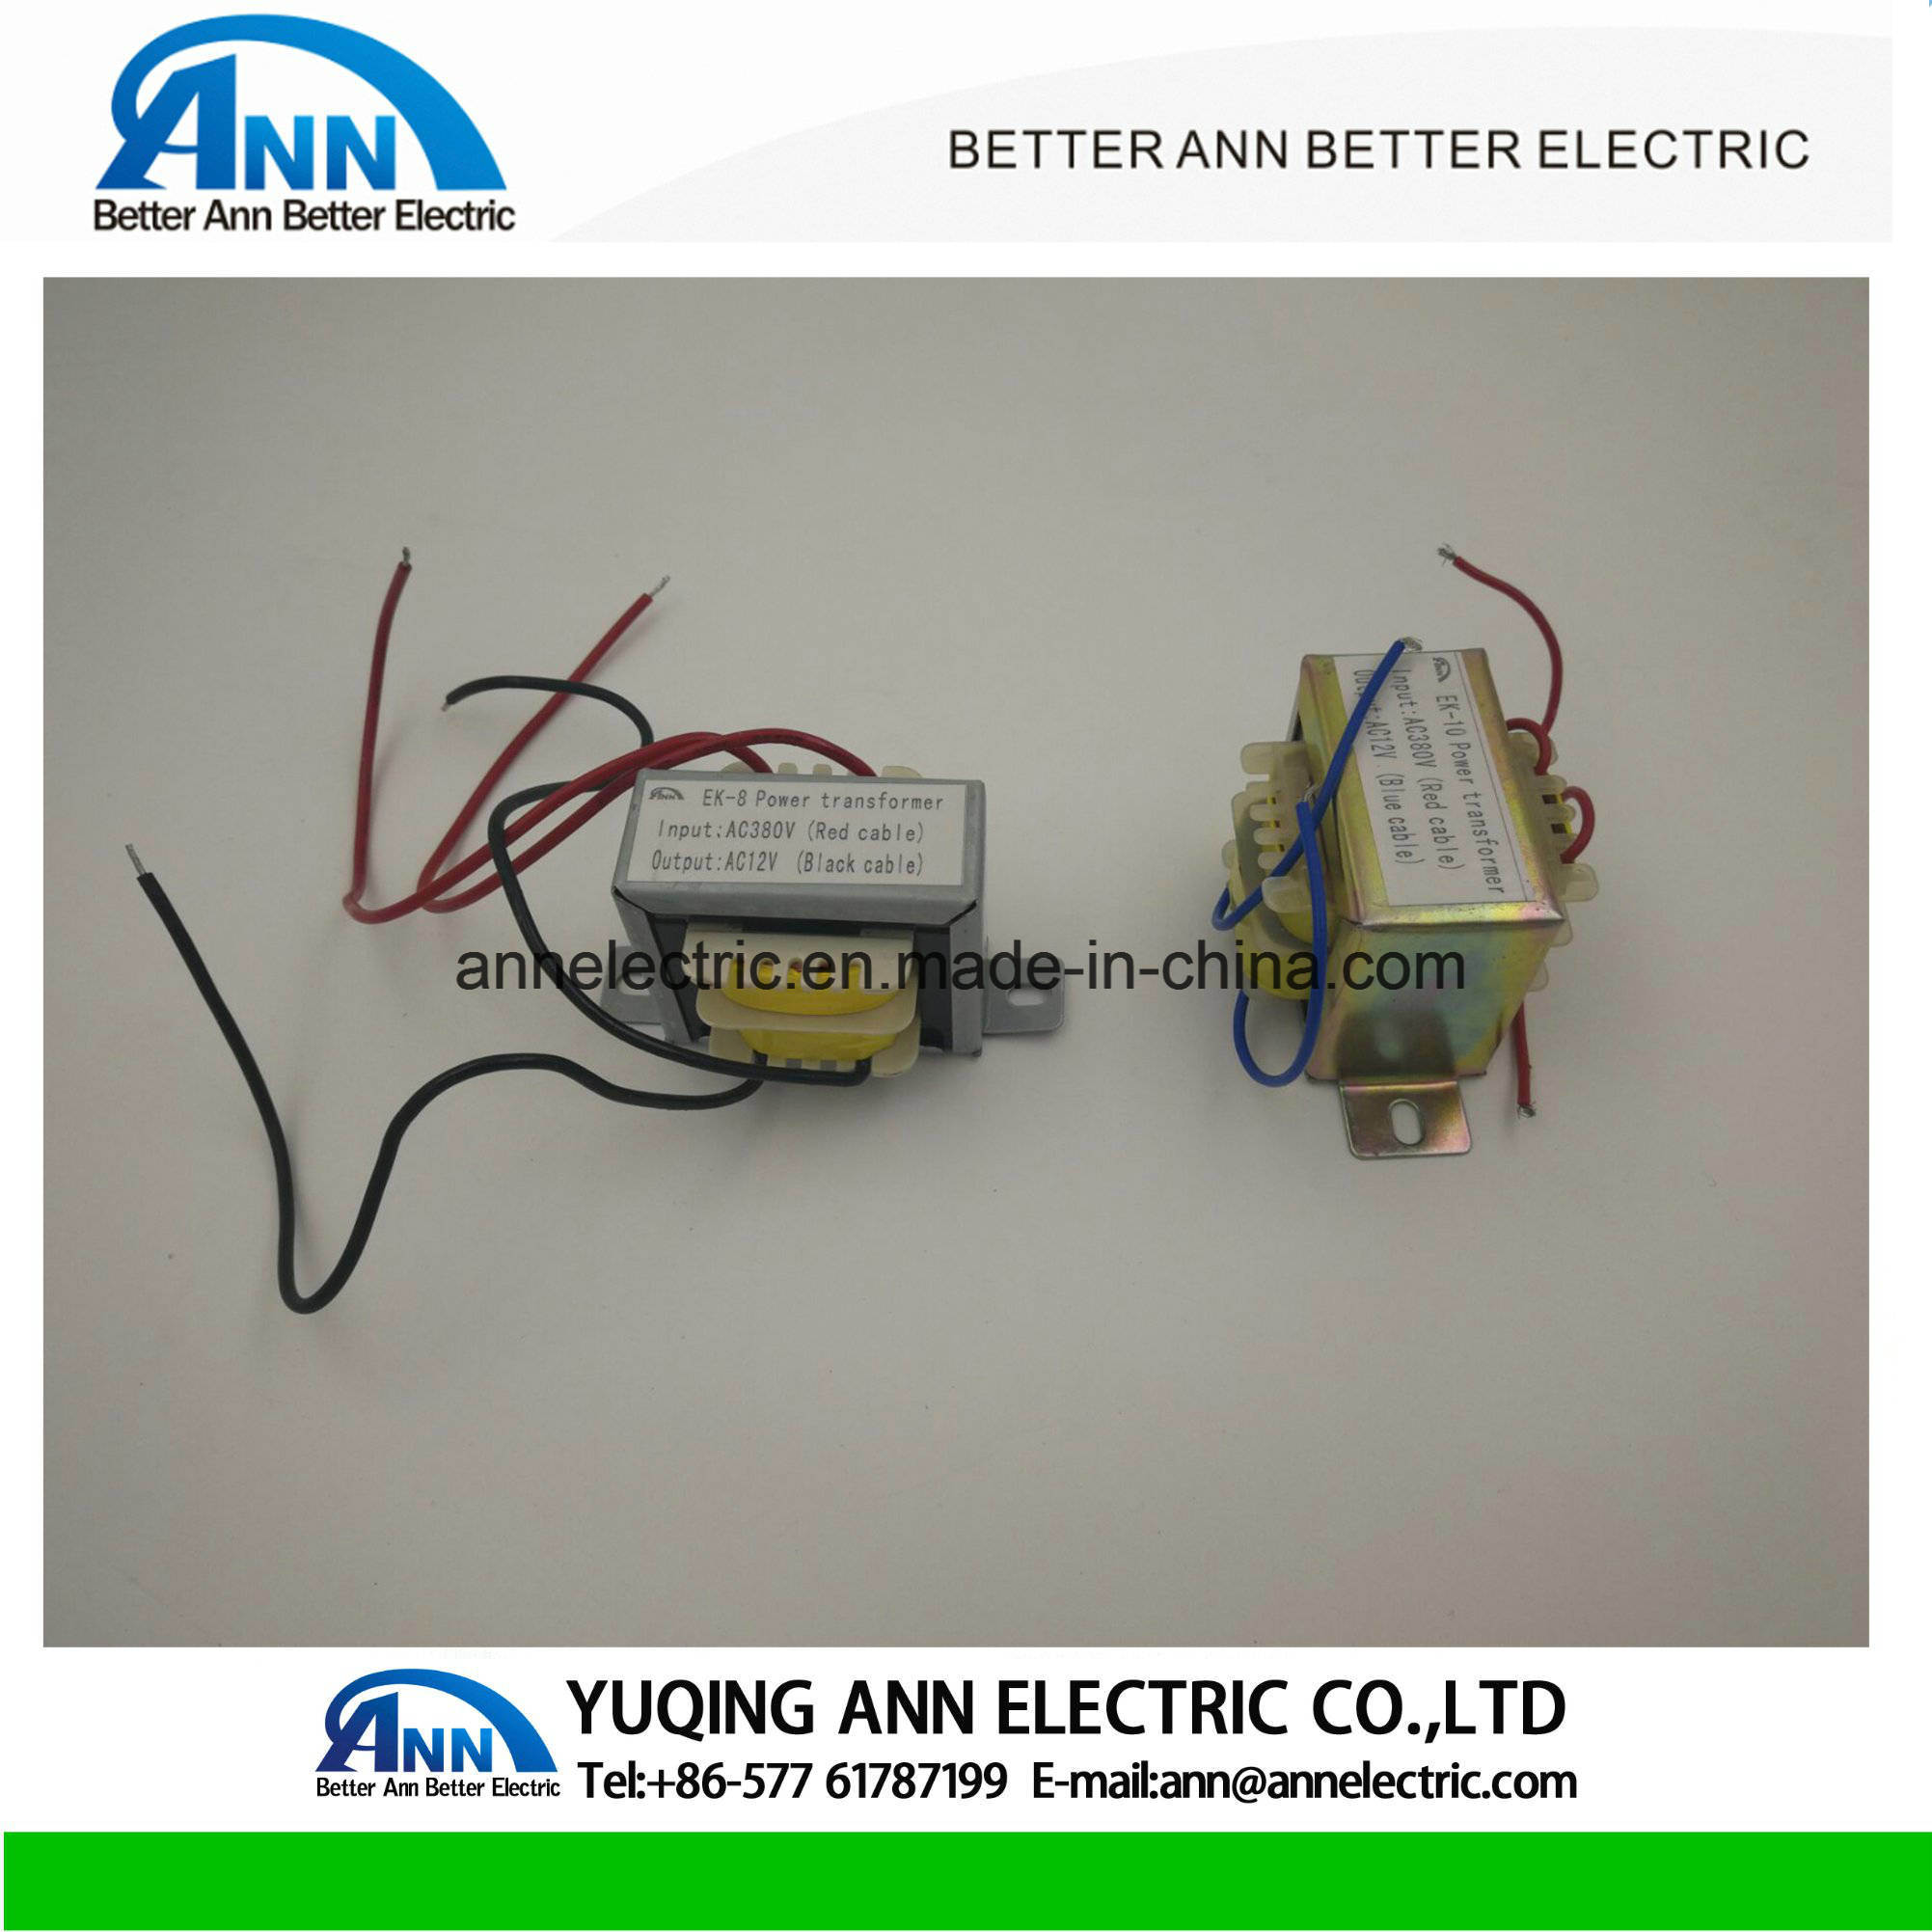 china ei transformer single phase power 230v 240v 120v 100v  search